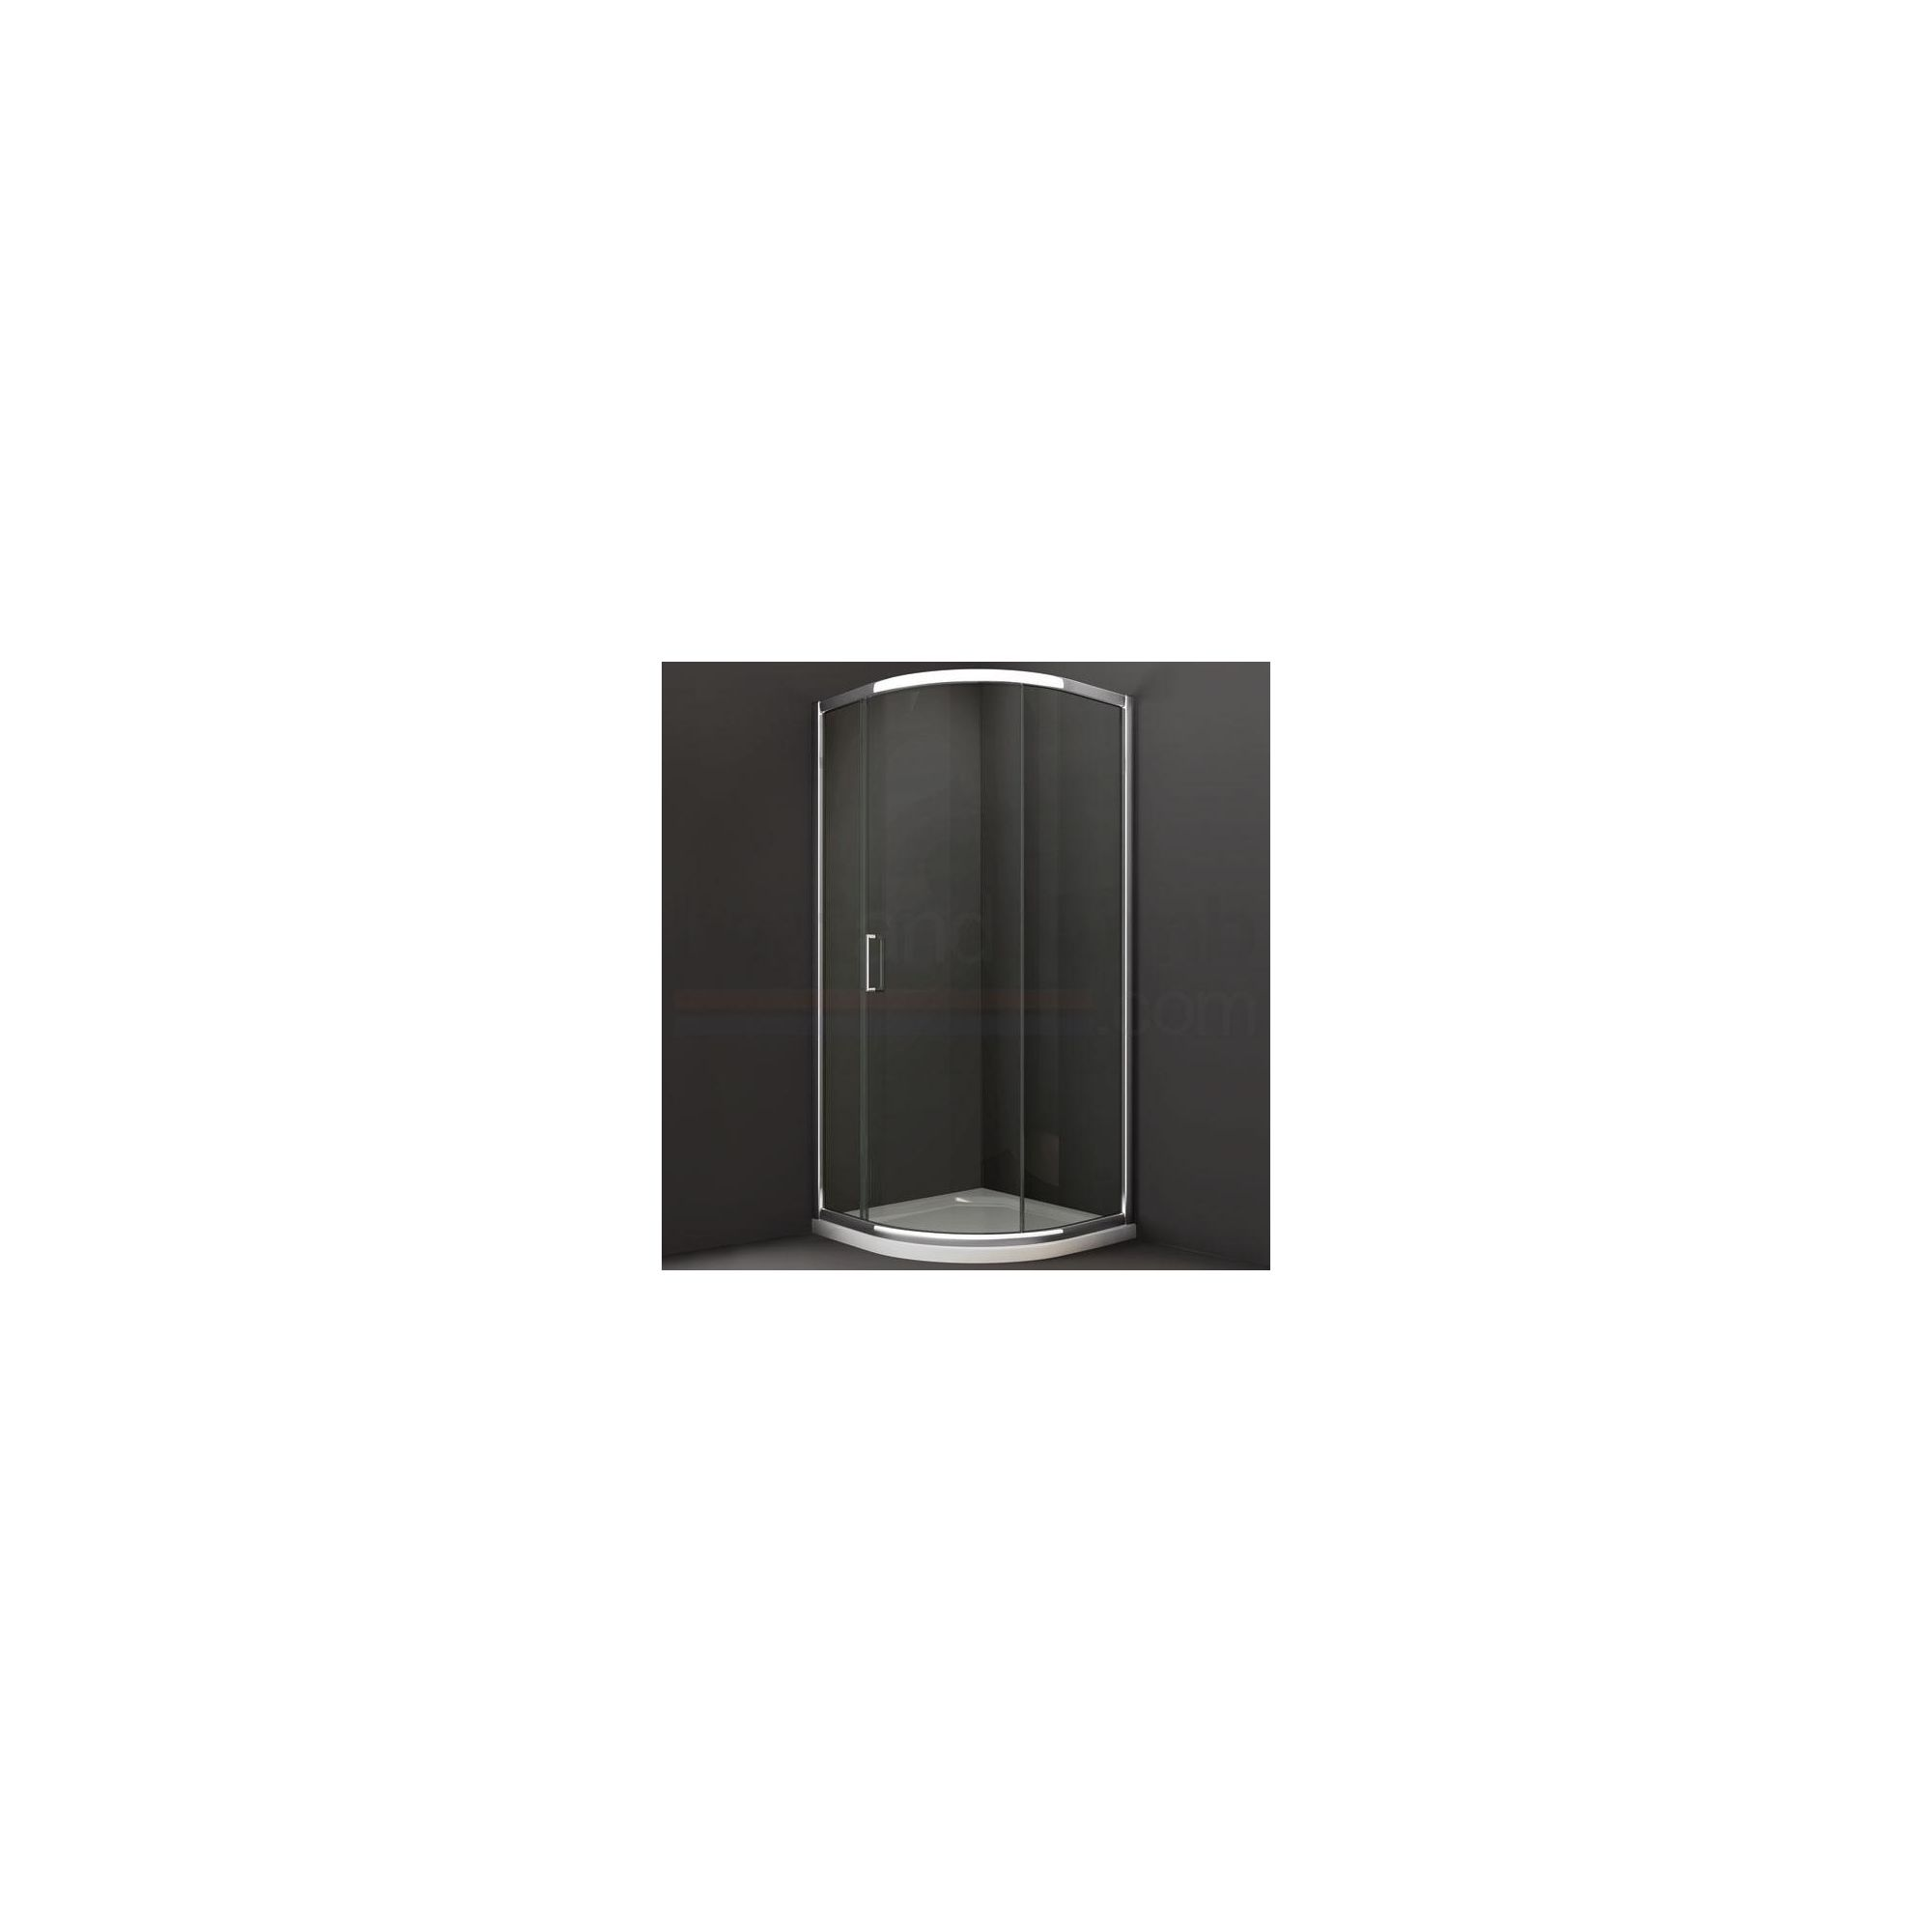 Merlyn Series 8 Sliding 1 Door Quadrant Shower Enclosure, 900mm, Low Profile Tray, 8mm Glass at Tesco Direct